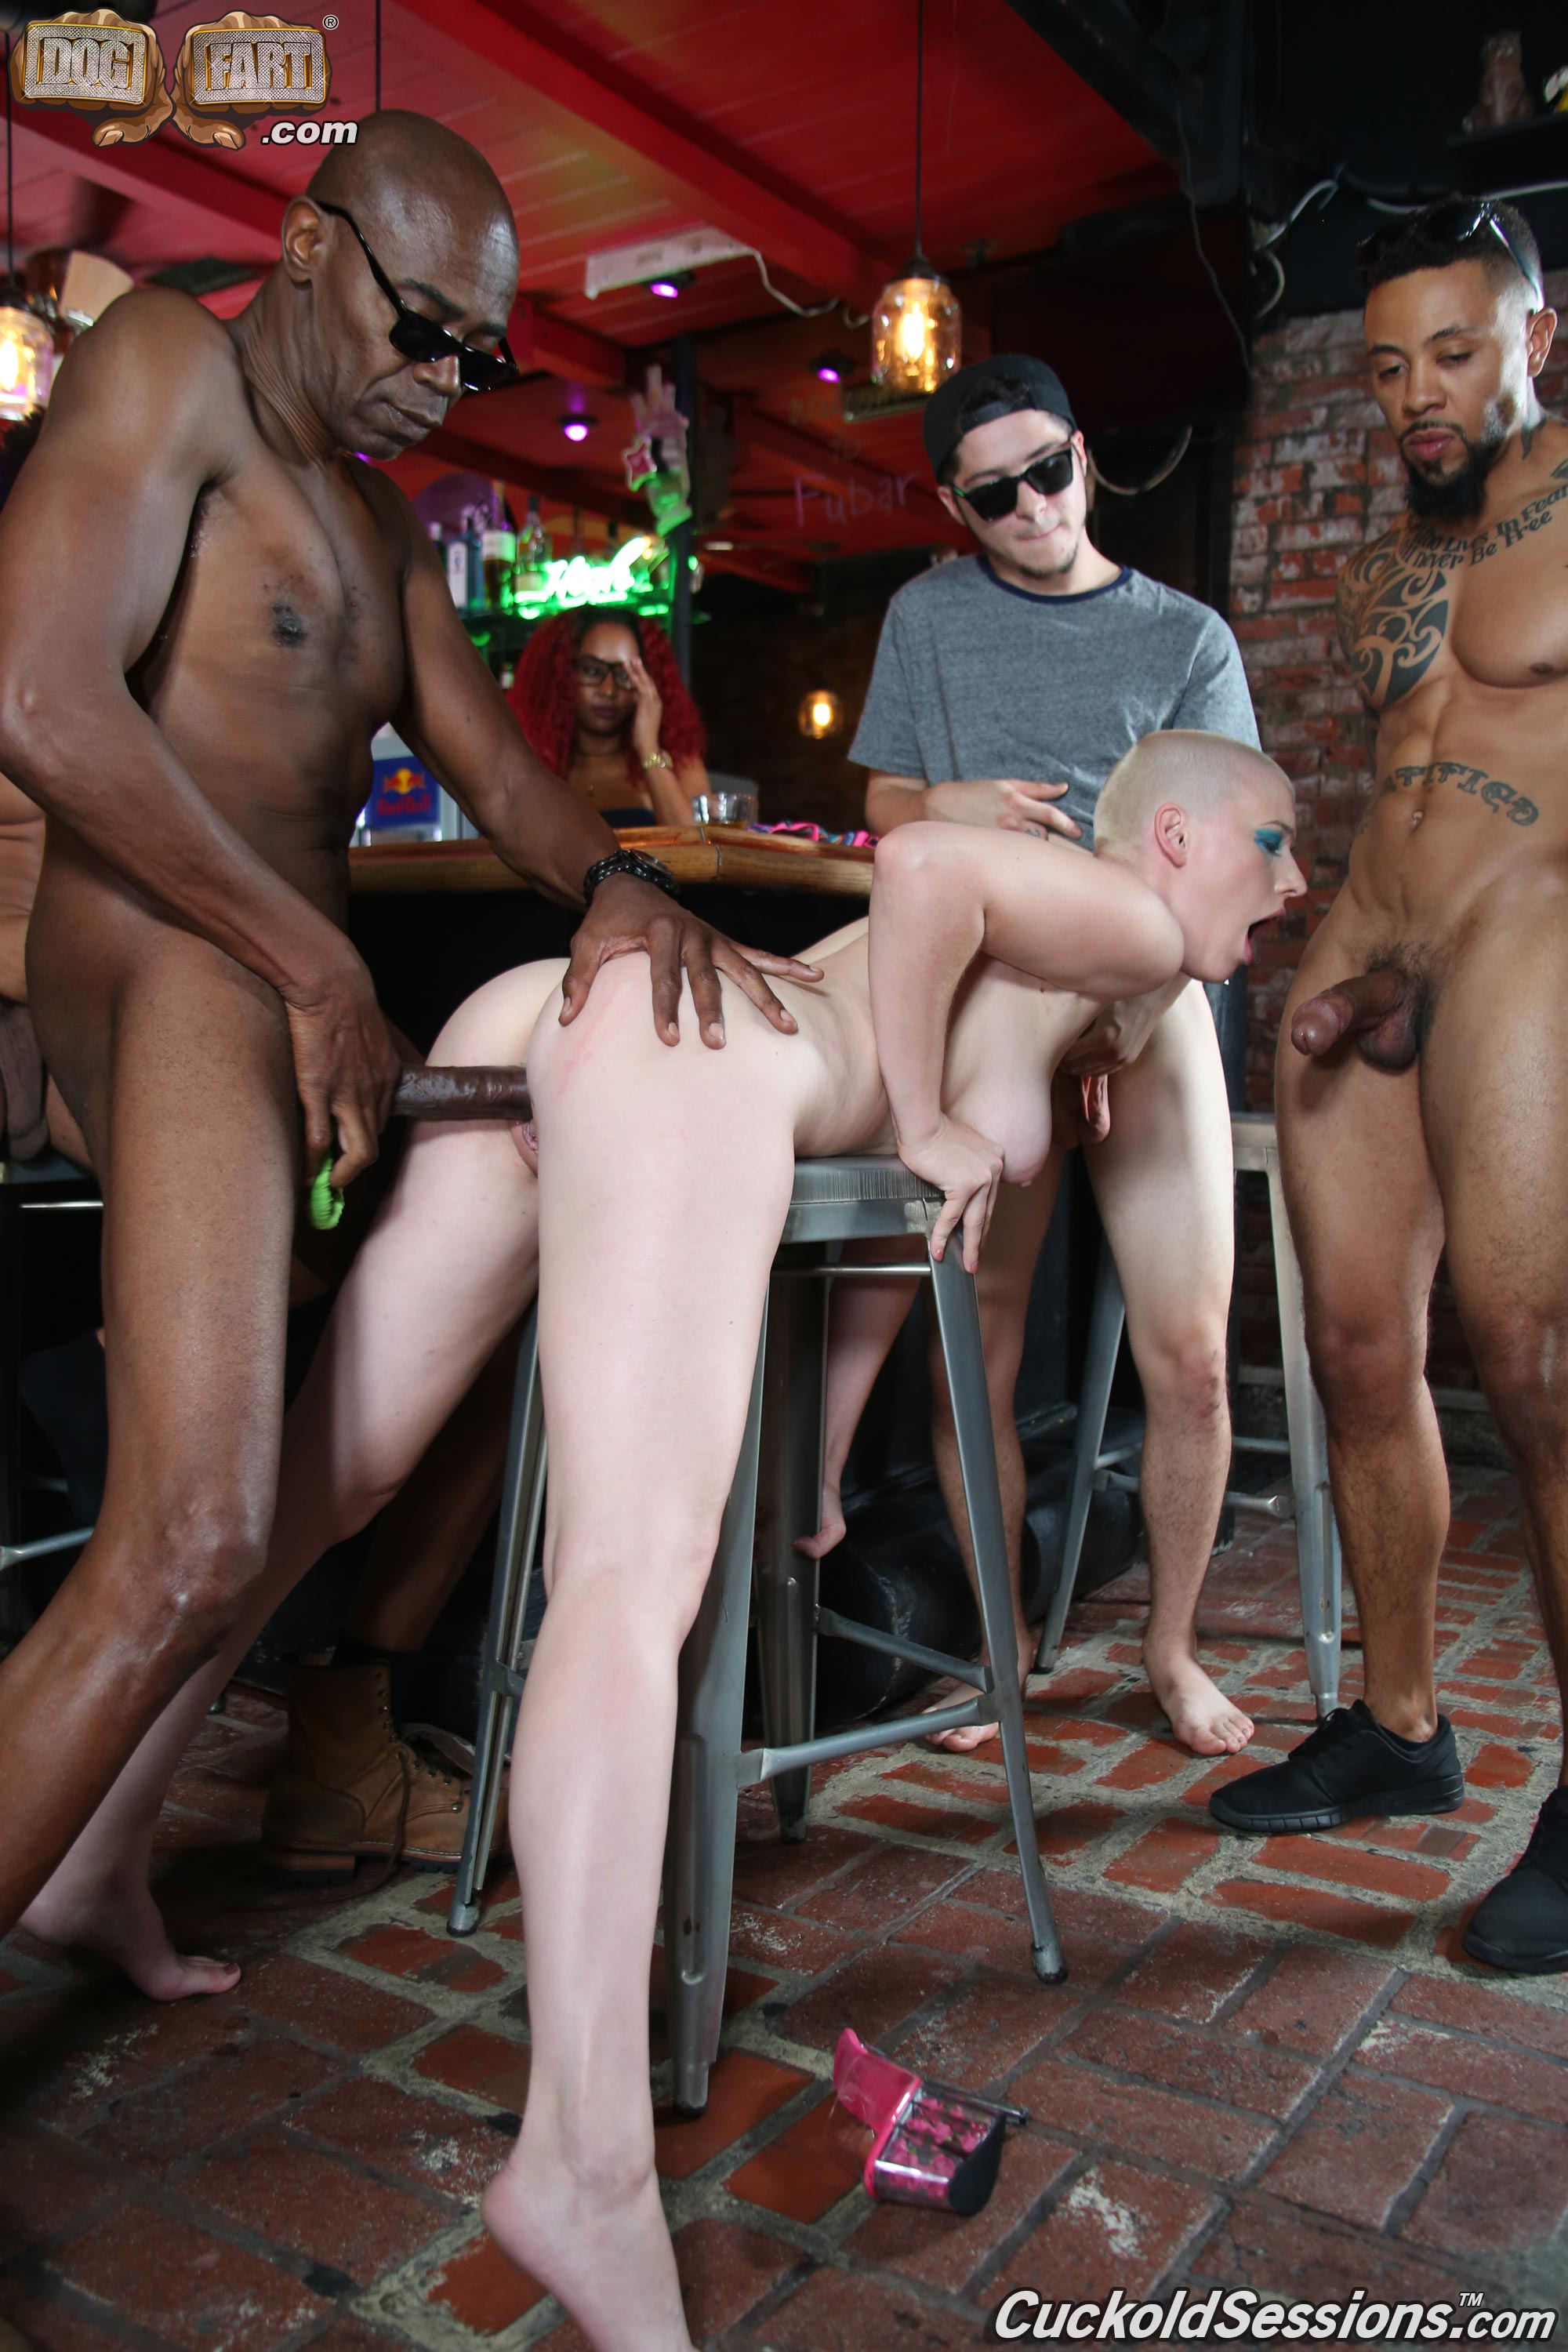 Black bulls and bbc cuckold owned couples party 4 compil - 1 part 7